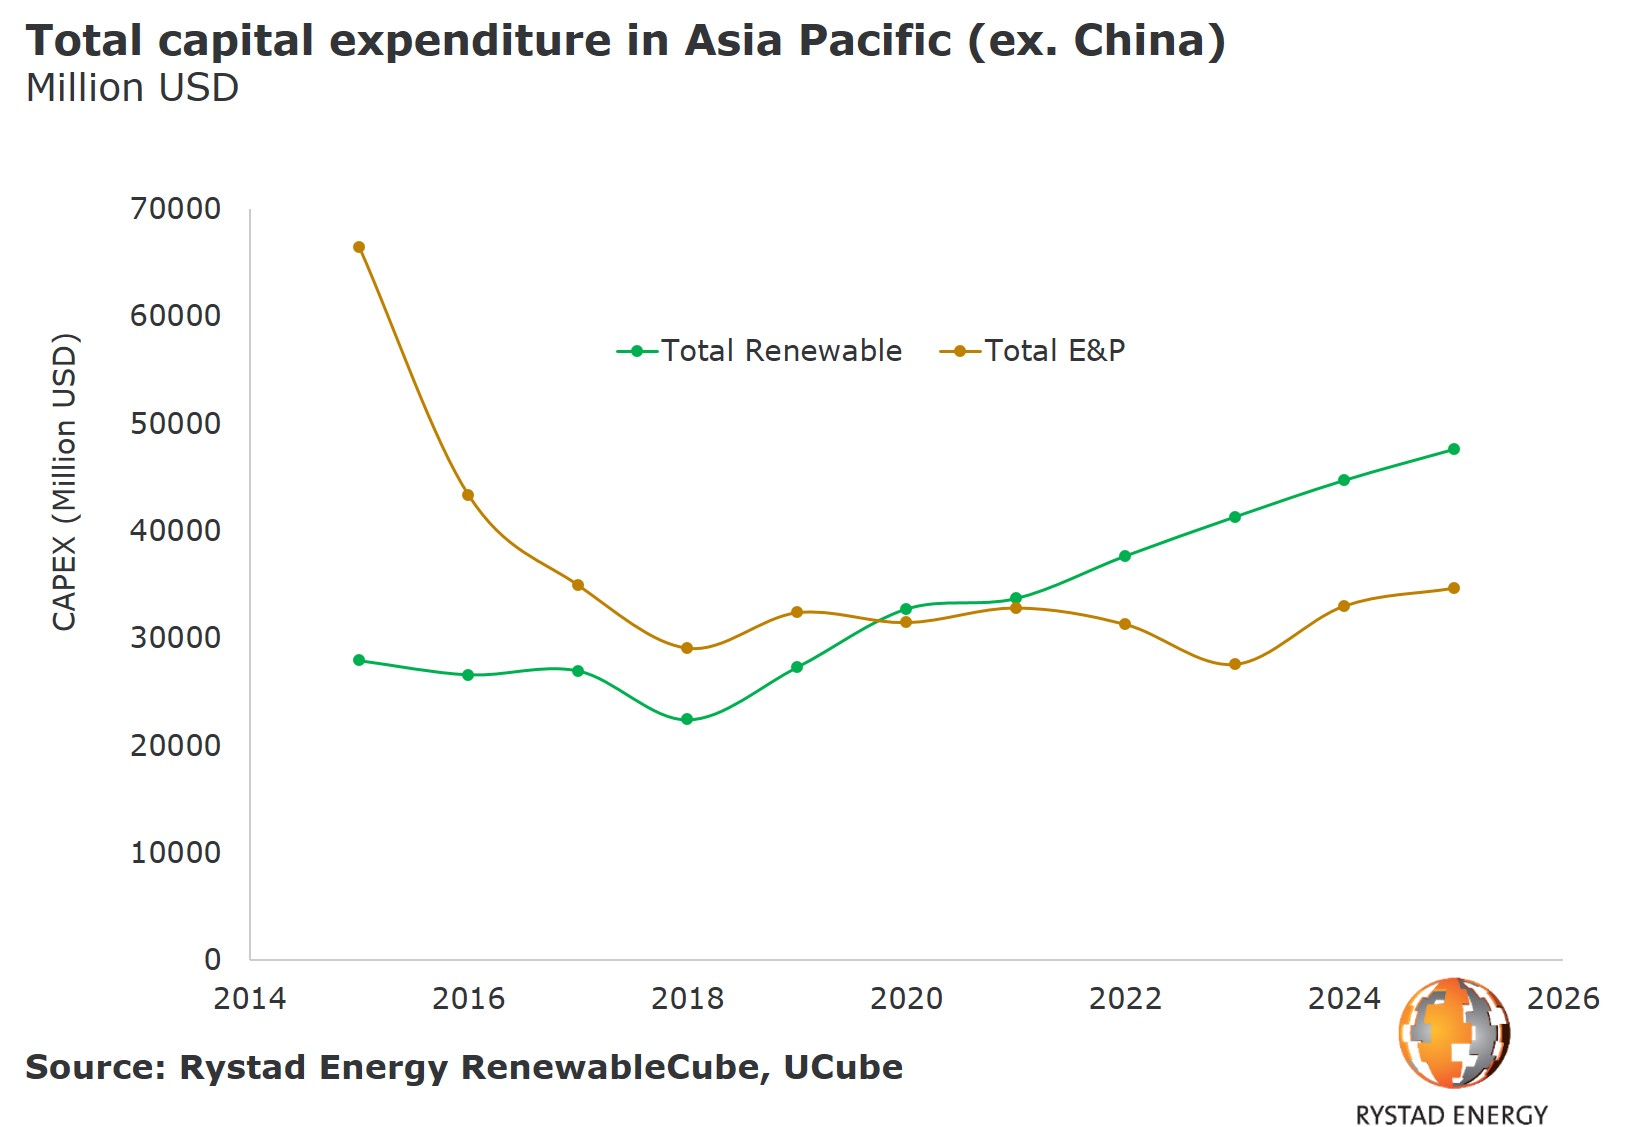 20190523_PR_Charts_Renewed energy in Asian Upstream total capex 2.jpg